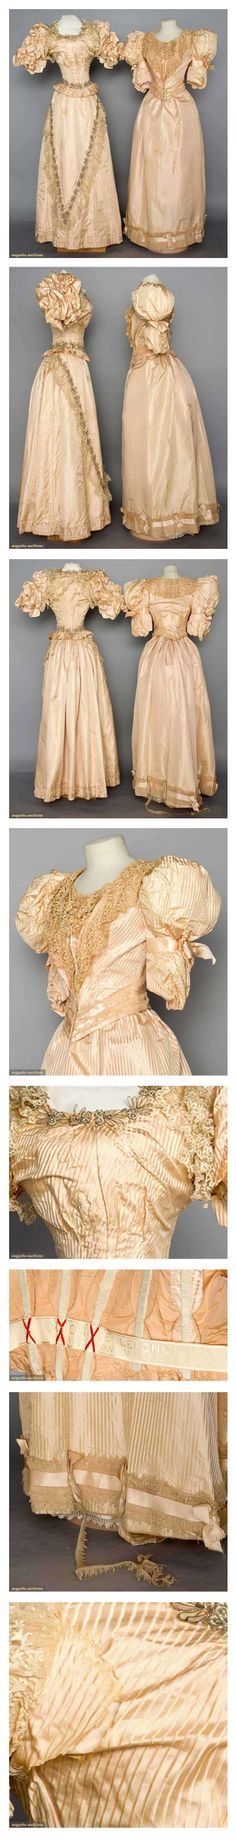 """TWO LADIES' GOWNS, c. 1895 Both 2-piece light pink satin w/ figured stripes, short puff sleeves, lace trim: 1 w/ labeled petersham """"Elenore Lelong, 32 Rue Mignon Paris"""", (brown drip stain on skirt front, skirt tear) fair; 1 w/ metallic skirt & bodice trim, (underarm tears) fair; t/w 3 pieces young ladies' white underwear c/o 2 petticoats & 1 step-in, excellent. Augusta Auctions."""